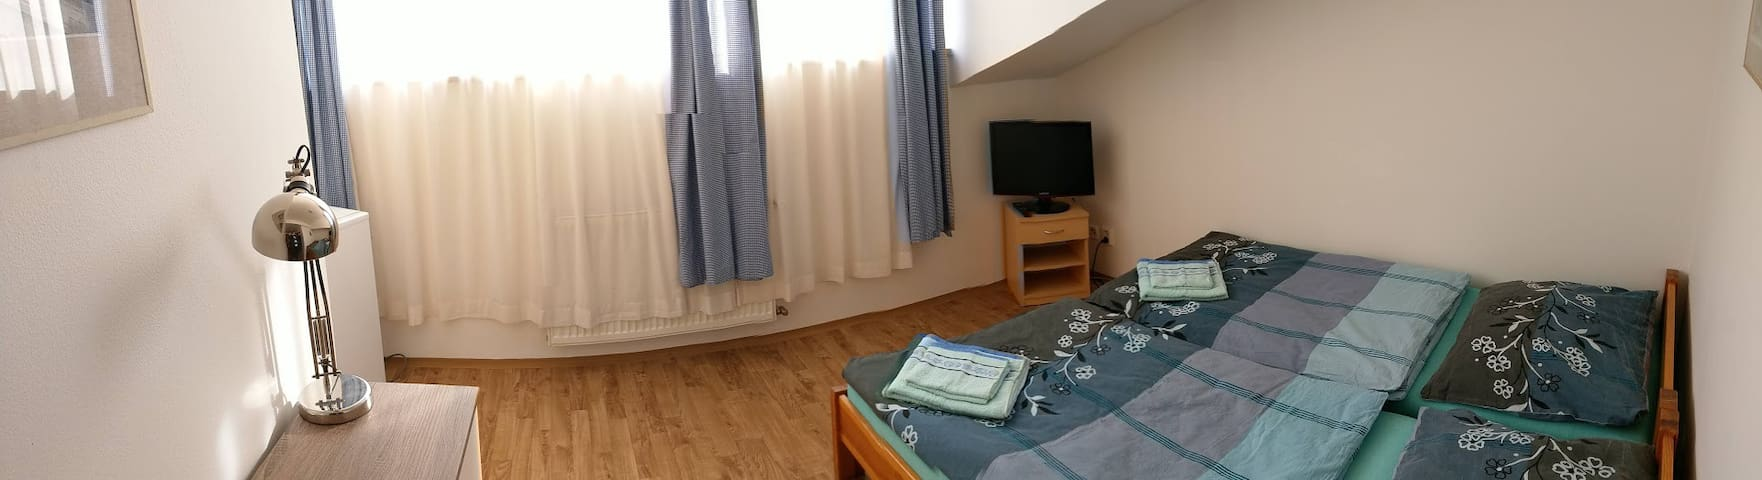 Room for 2, guesthouse near airport and city (16)